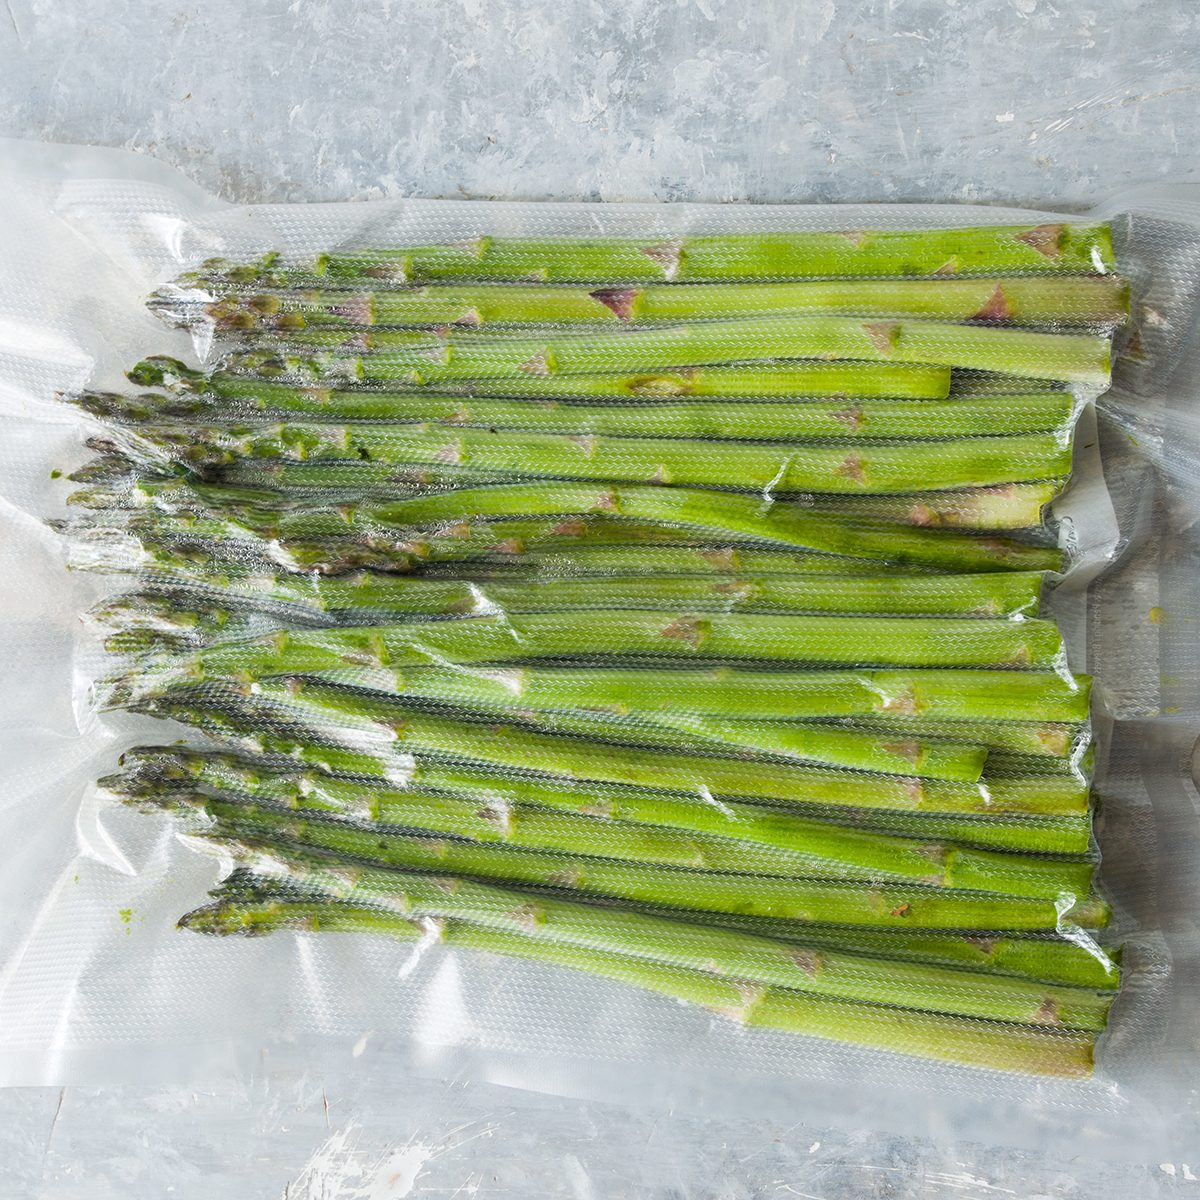 Packaged asparagus